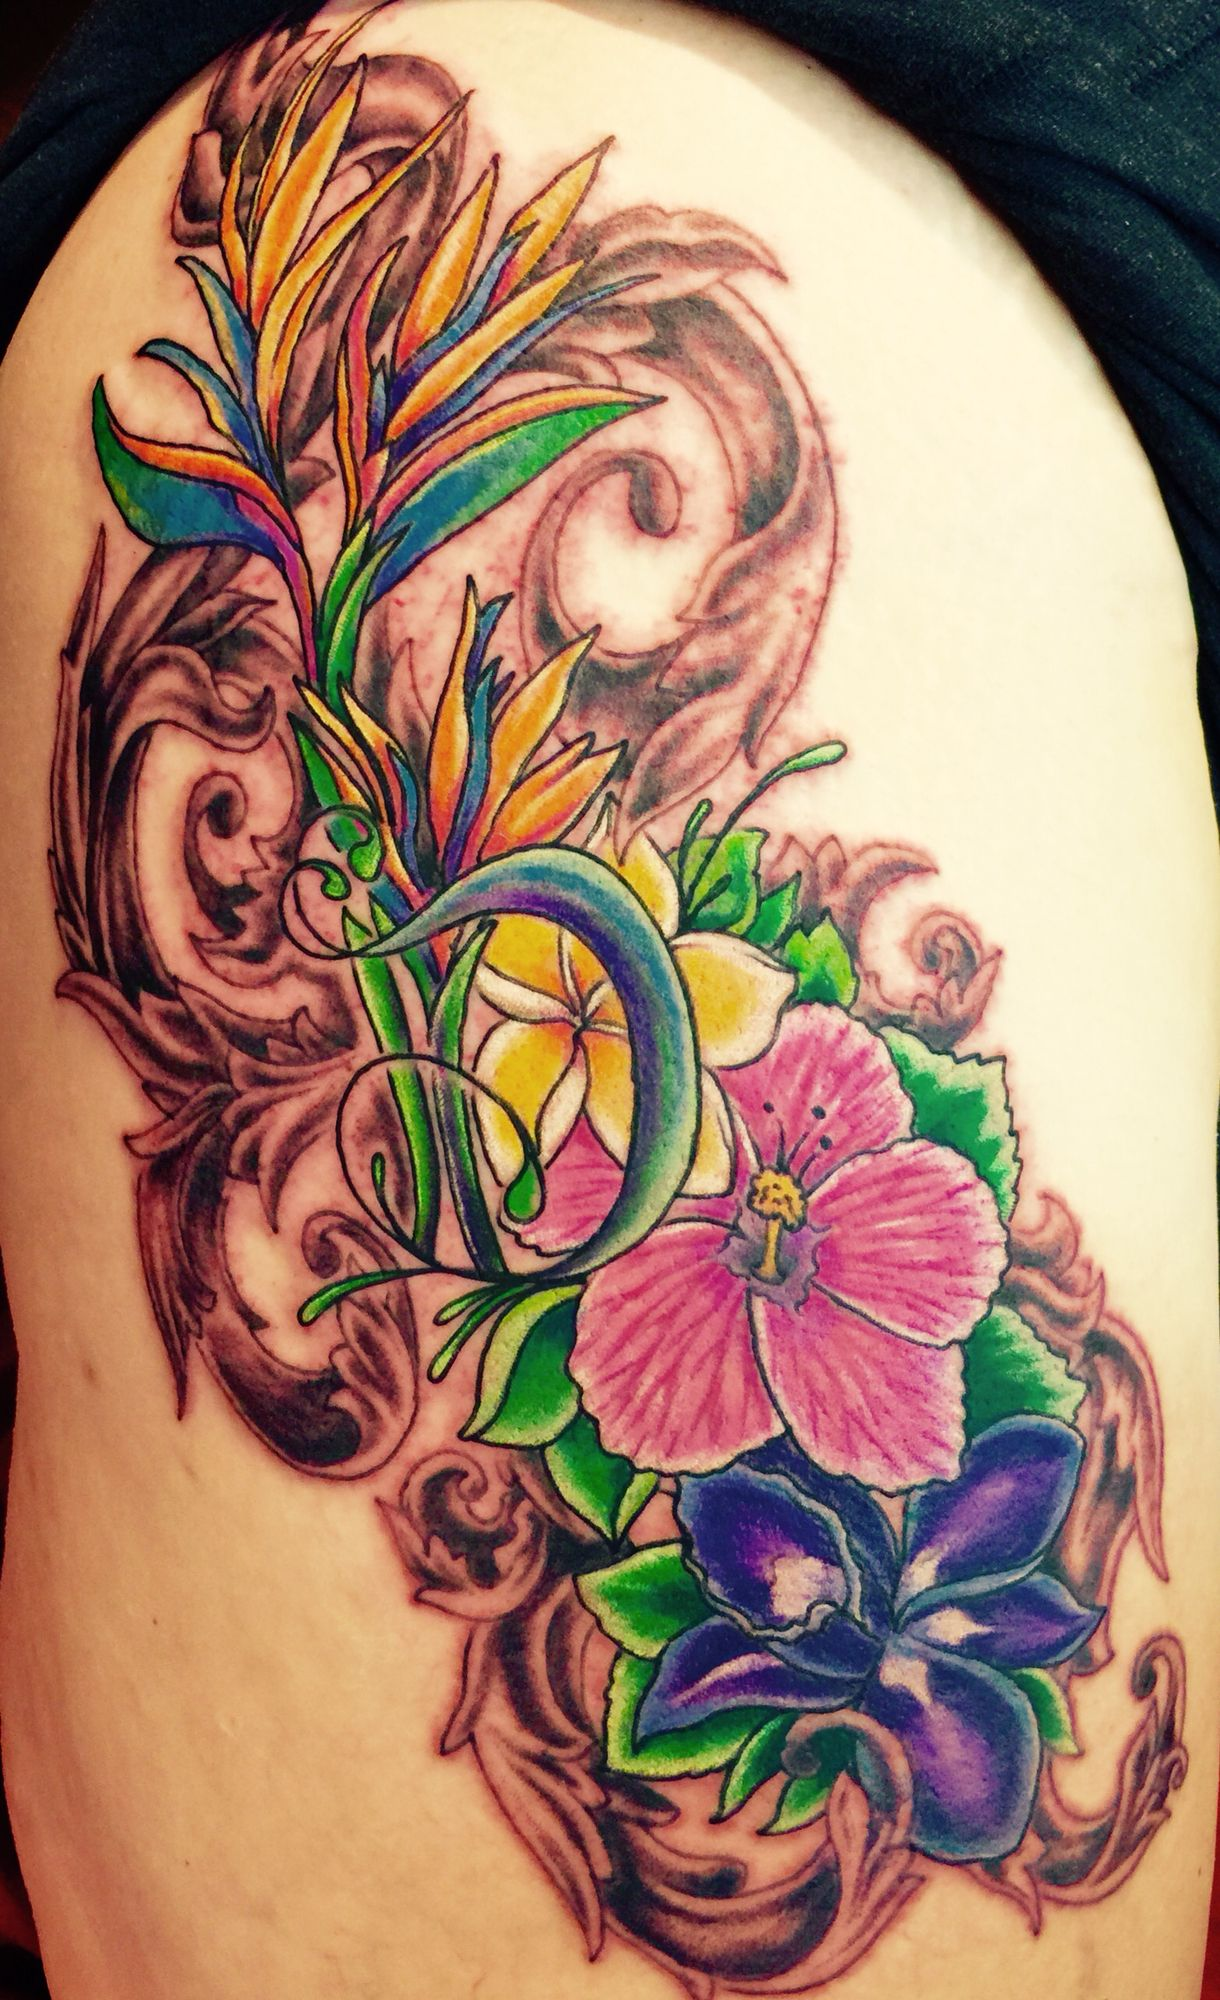 Hawaiian flowers tattoo tattoos pinterest hawaiian flower hawaiian flowers tattoo izmirmasajfo